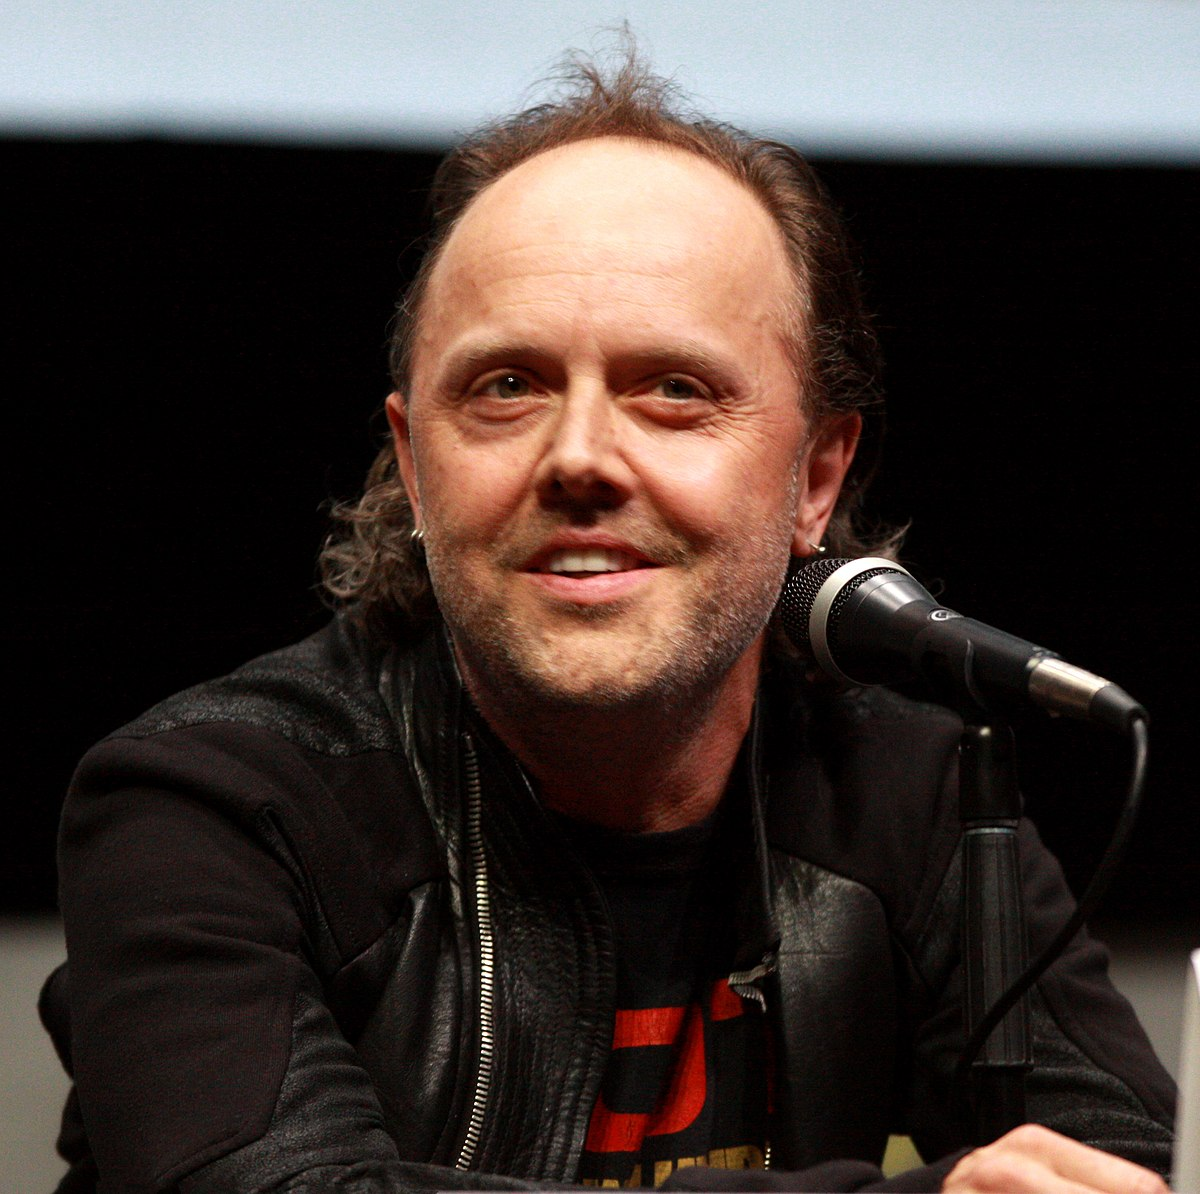 lars ulrich 2017lars ulrich wife, lars ulrich 2017, lars ulrich height, lars ulrich drum set, lars ulrich solo, lars ulrich 1983, lars ulrich net worth, lars ulrich 1991, lars ulrich gear, lars ulrich accent, lars ulrich house, lars ulrich father, lars ulrich paintings, lars ulrich one, lars ulrich interview, lars ulrich signature snare, lars ulrich cymbal setup, lars ulrich tennis, lars ulrich jazz, lars ulrich quotes